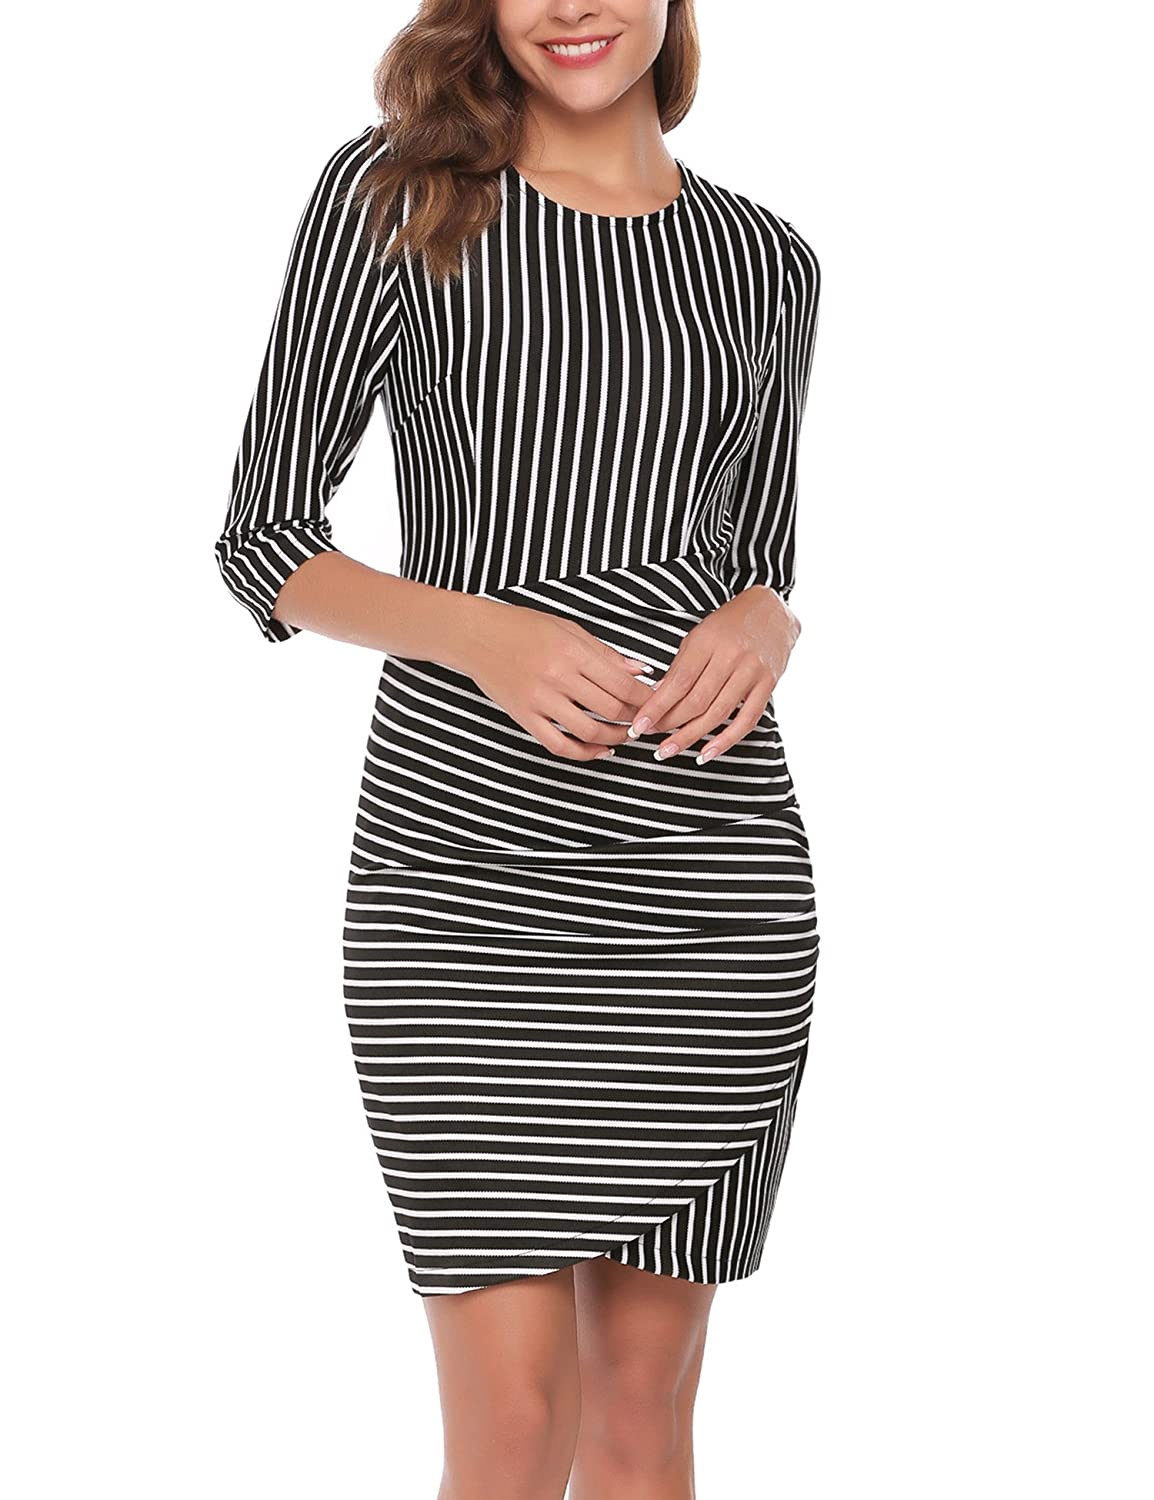 71939a557 Round neck, black and white striped, back zipper, tight sheath wrap dress,  ruched, 3/4 sleeve. Waisted slim fit, above knee contrast color tulip hem  bodycon ...